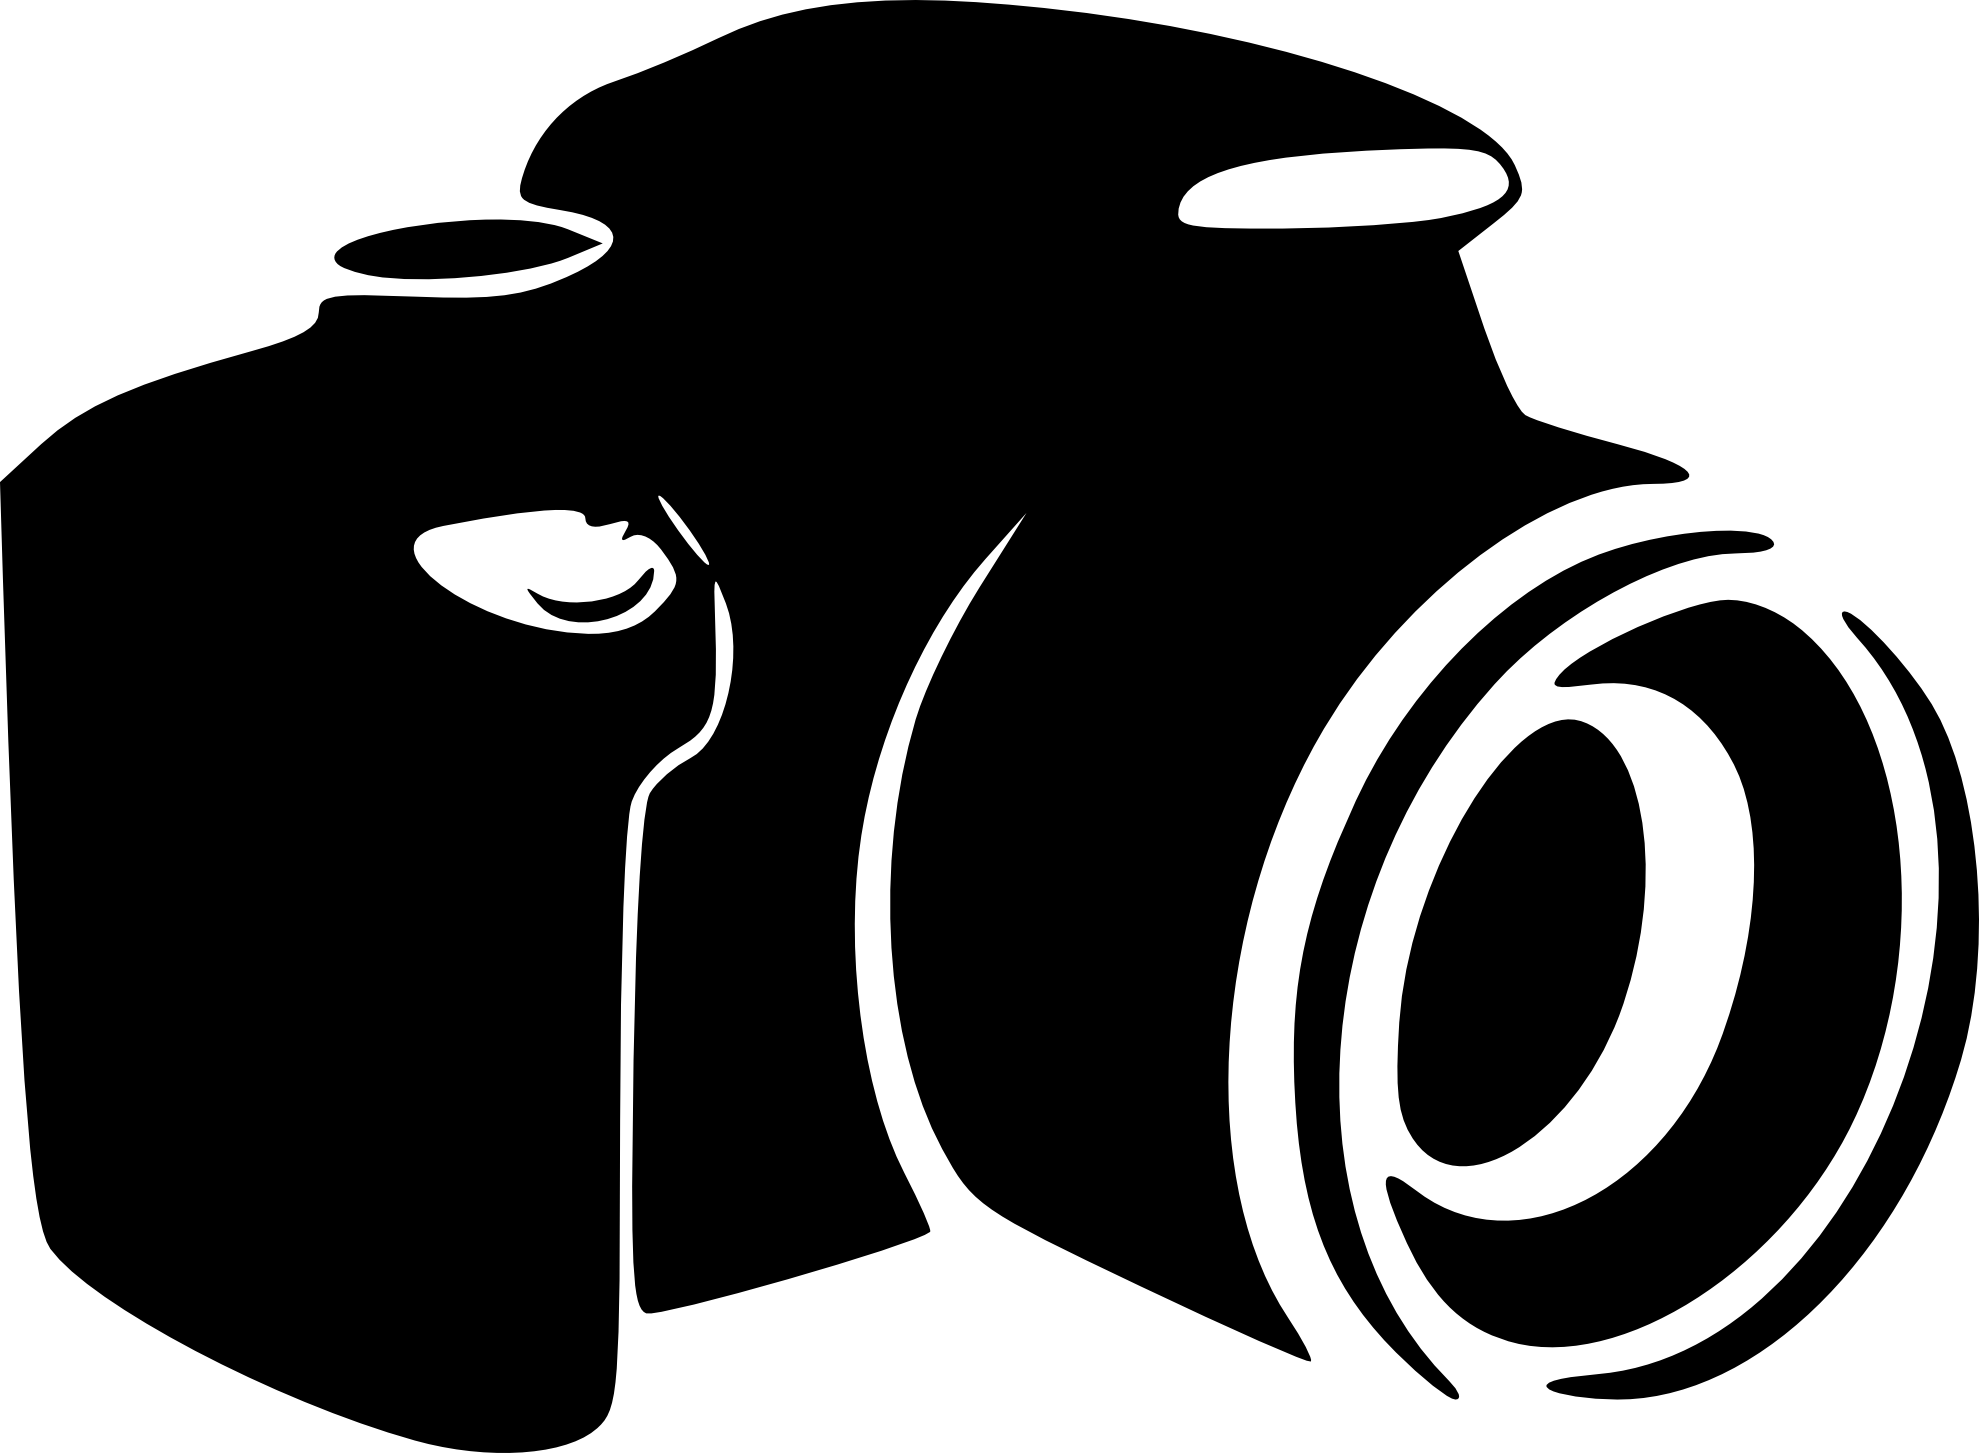 Yearbook clipart fancy camera. Silhouette logos pinterest